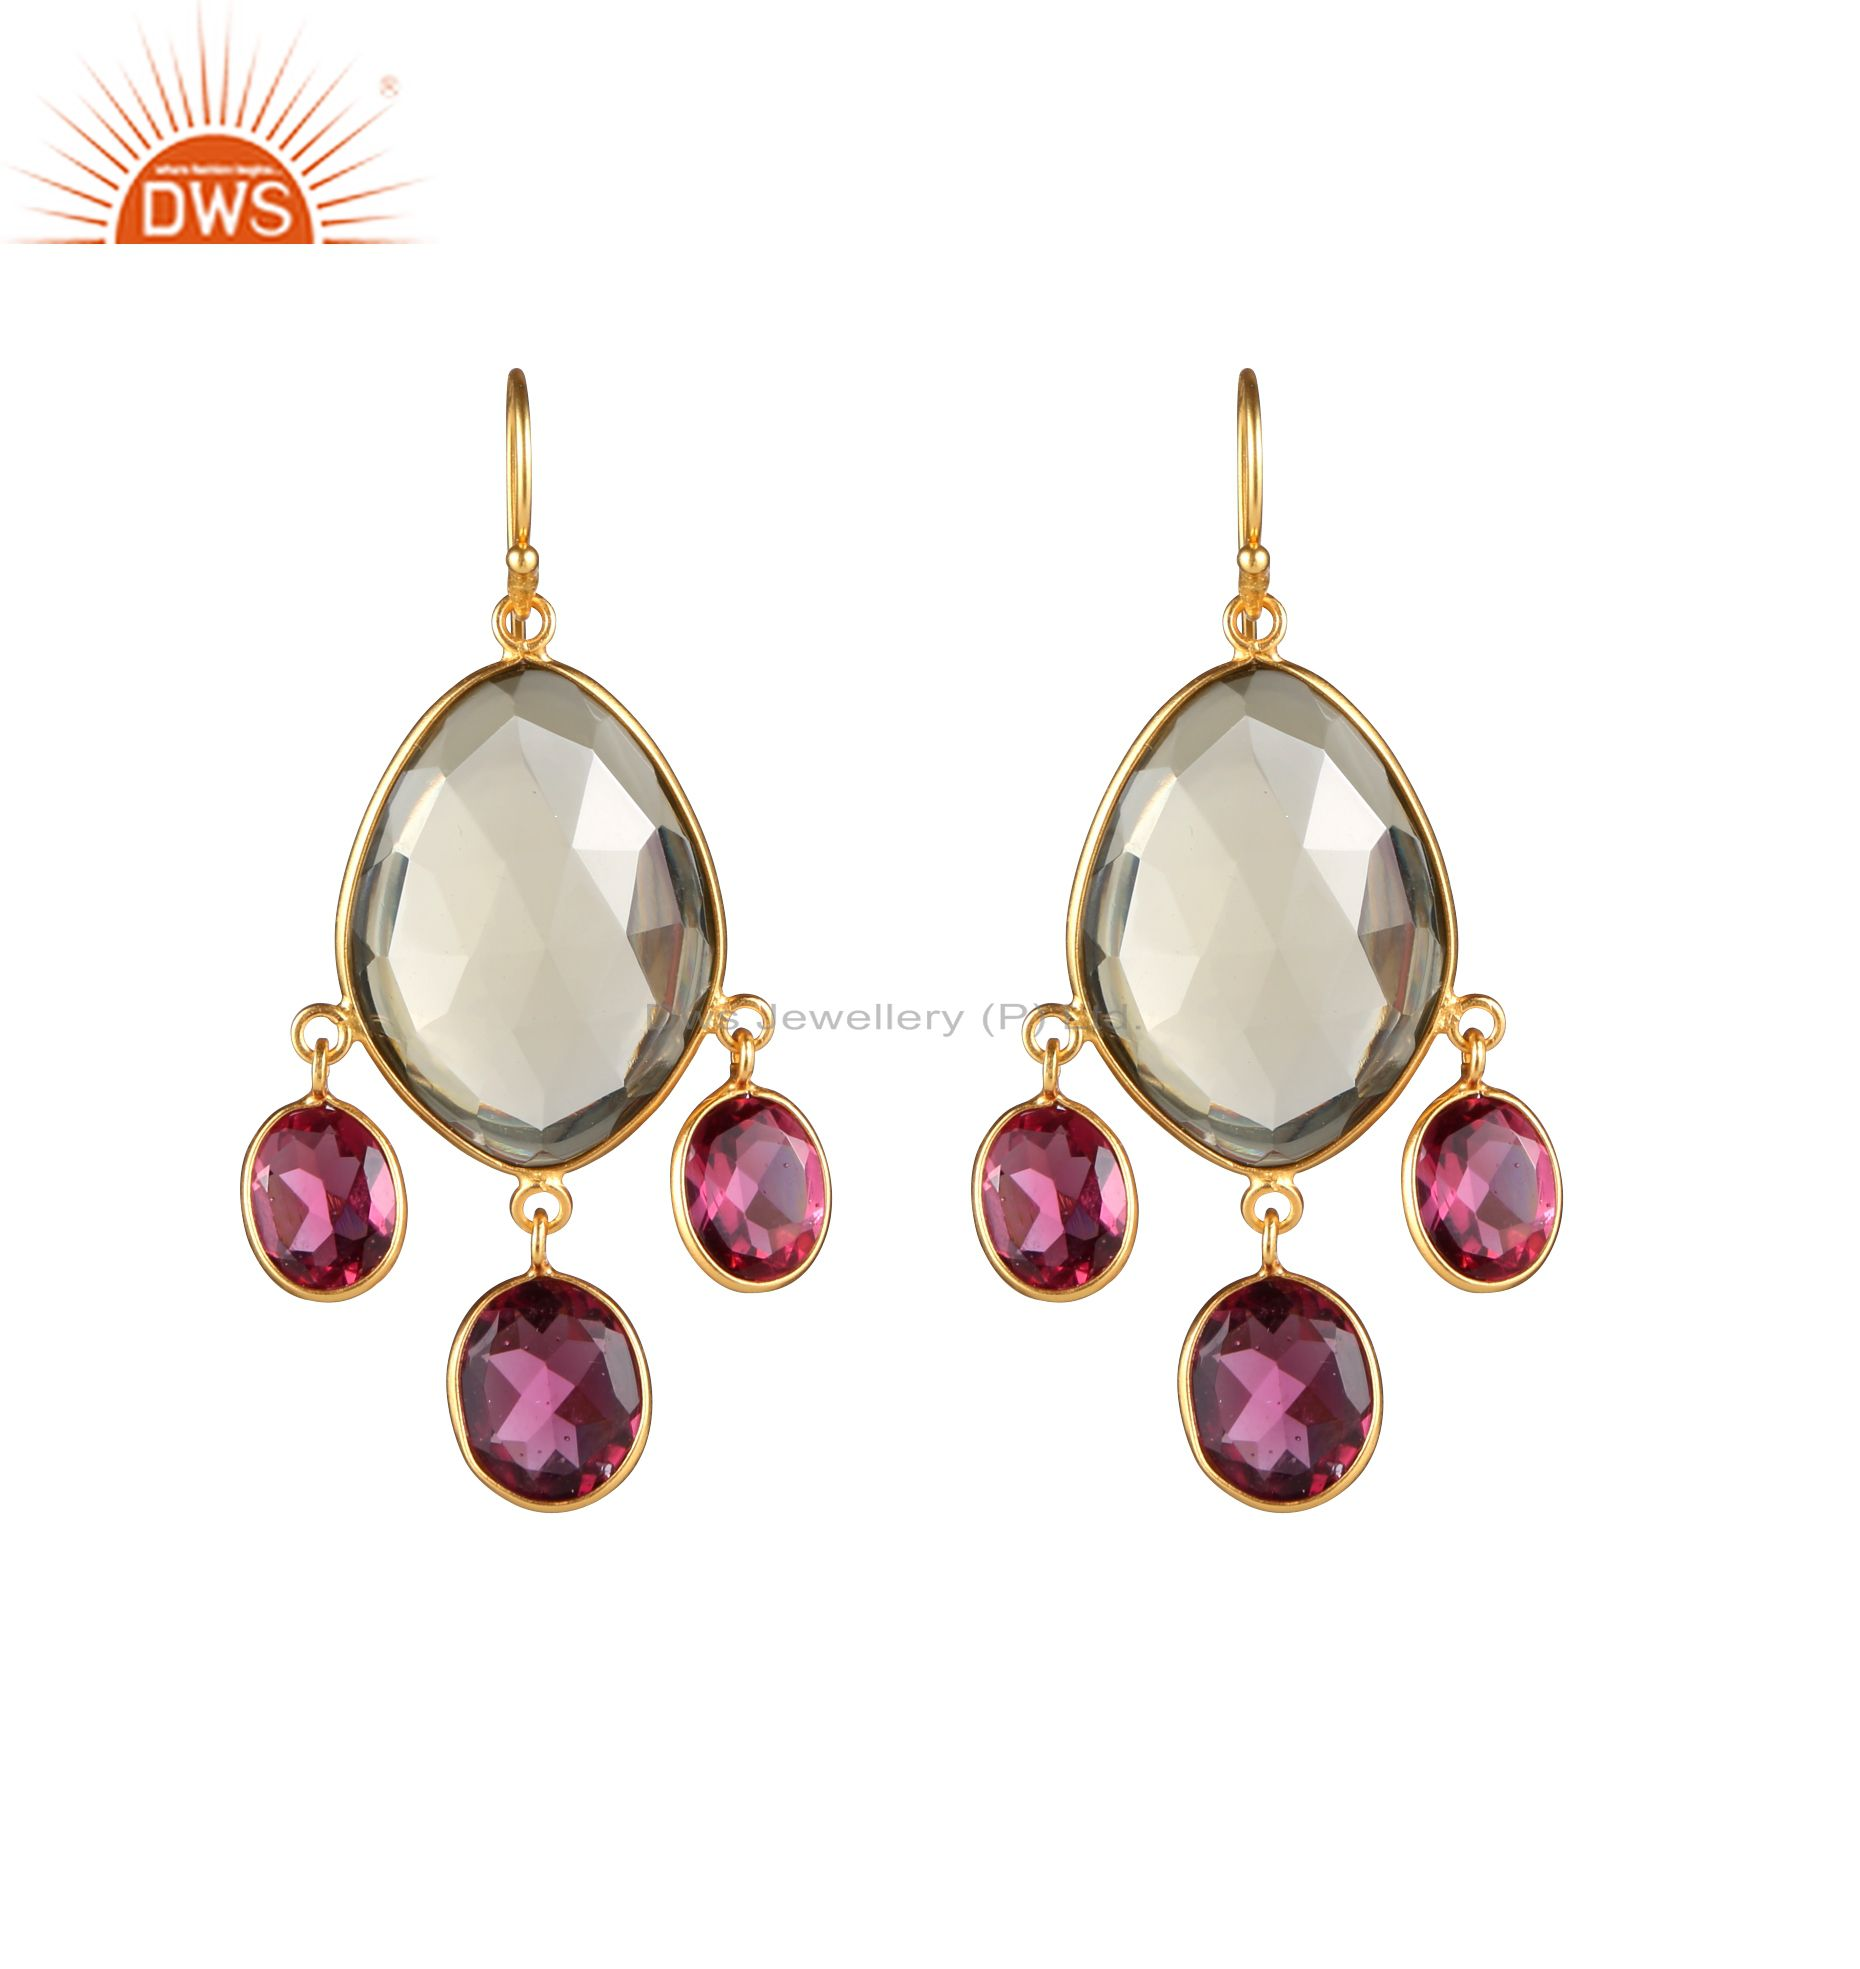 14K Yellow Gold Plated Sterling Silver Pink Corundum And Lemon Topaz Earrings